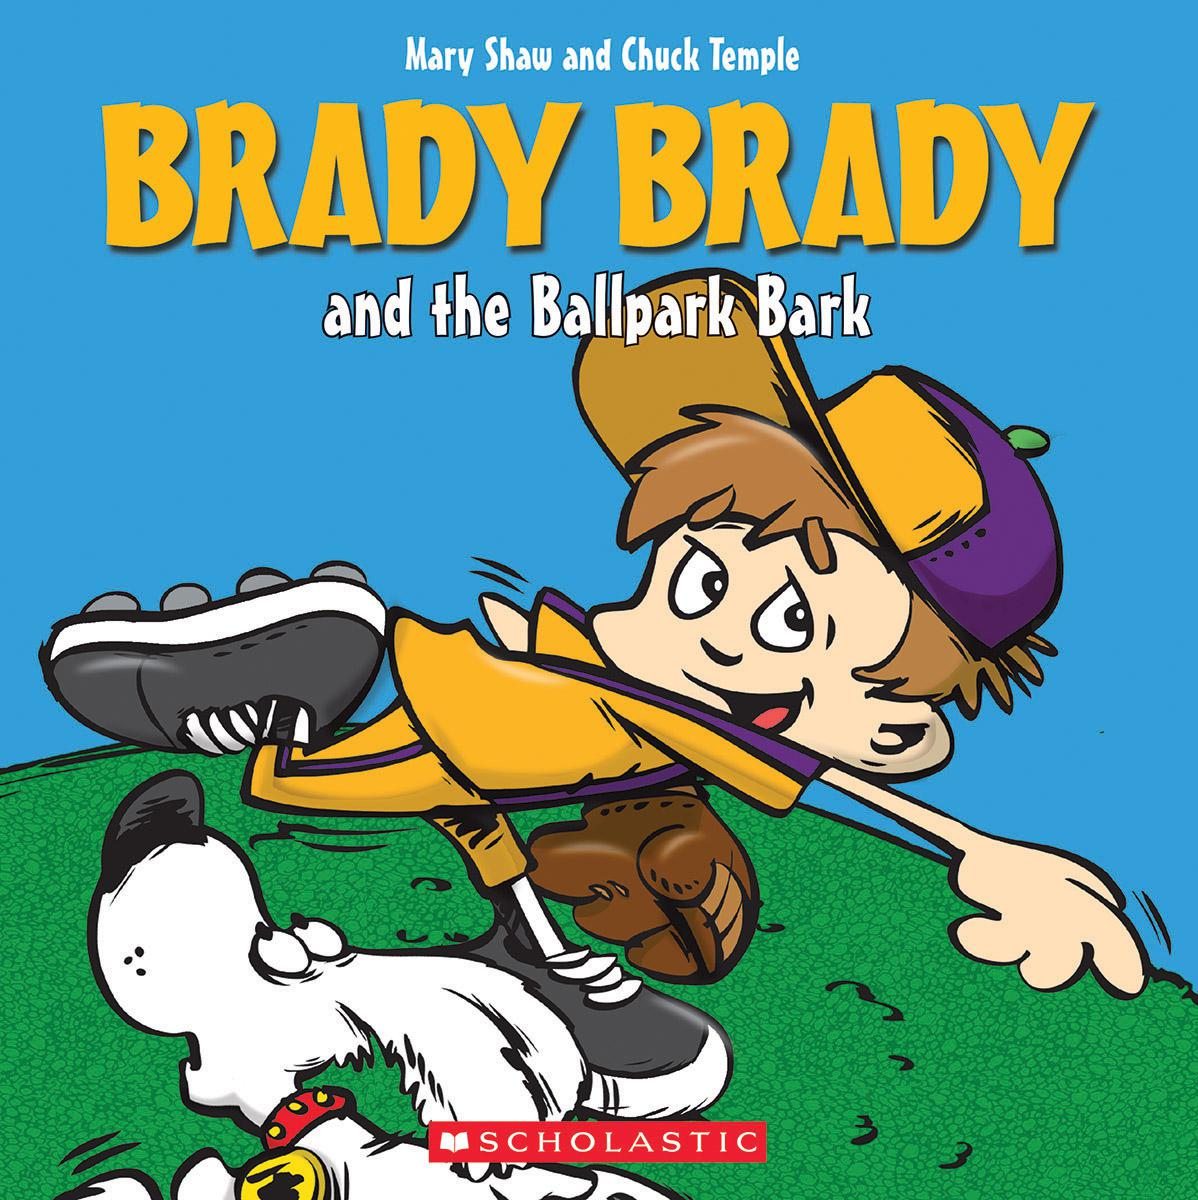 Brady Brady and the Ballpark Bark | Picture books